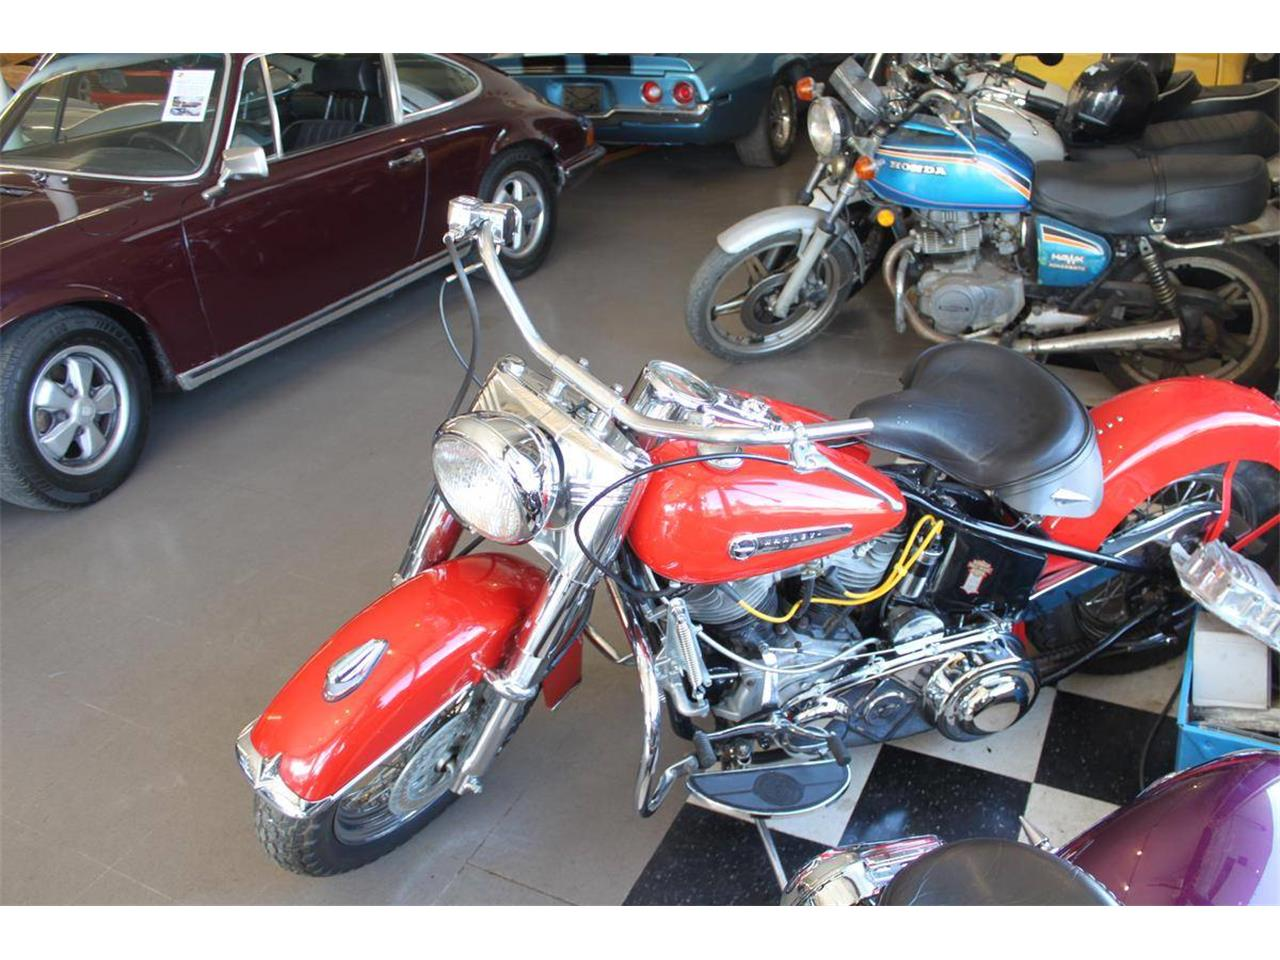 1950 Harley-Davidson Motorcycle for sale in Carnation, WA – photo 6